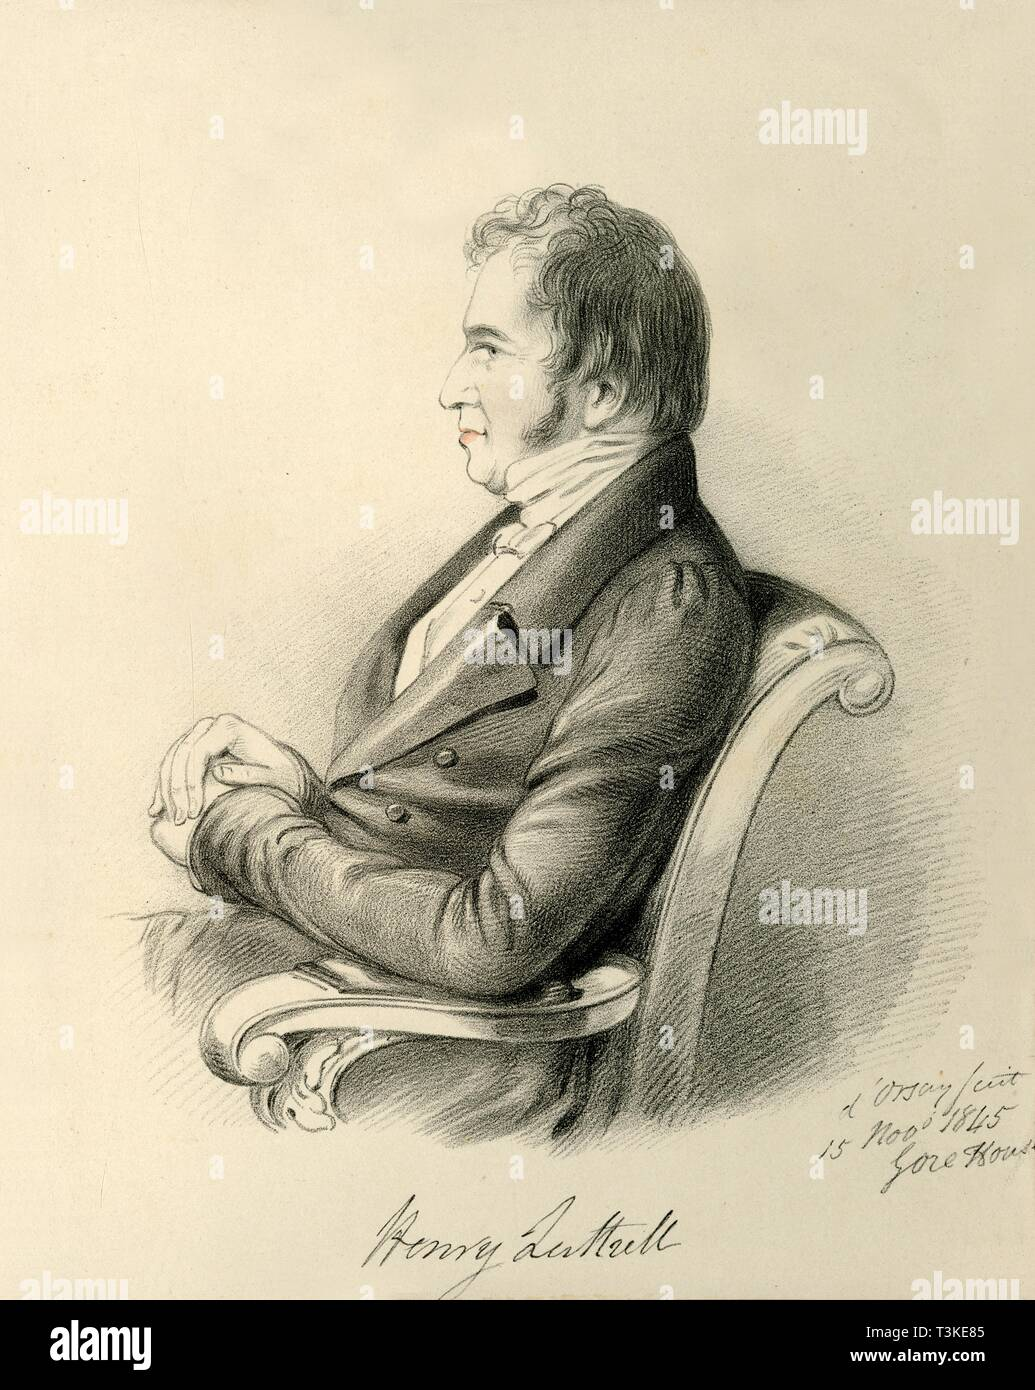 'Henry Luttrell', 1845. Creator: Alfred d'Orsay. - Stock Image